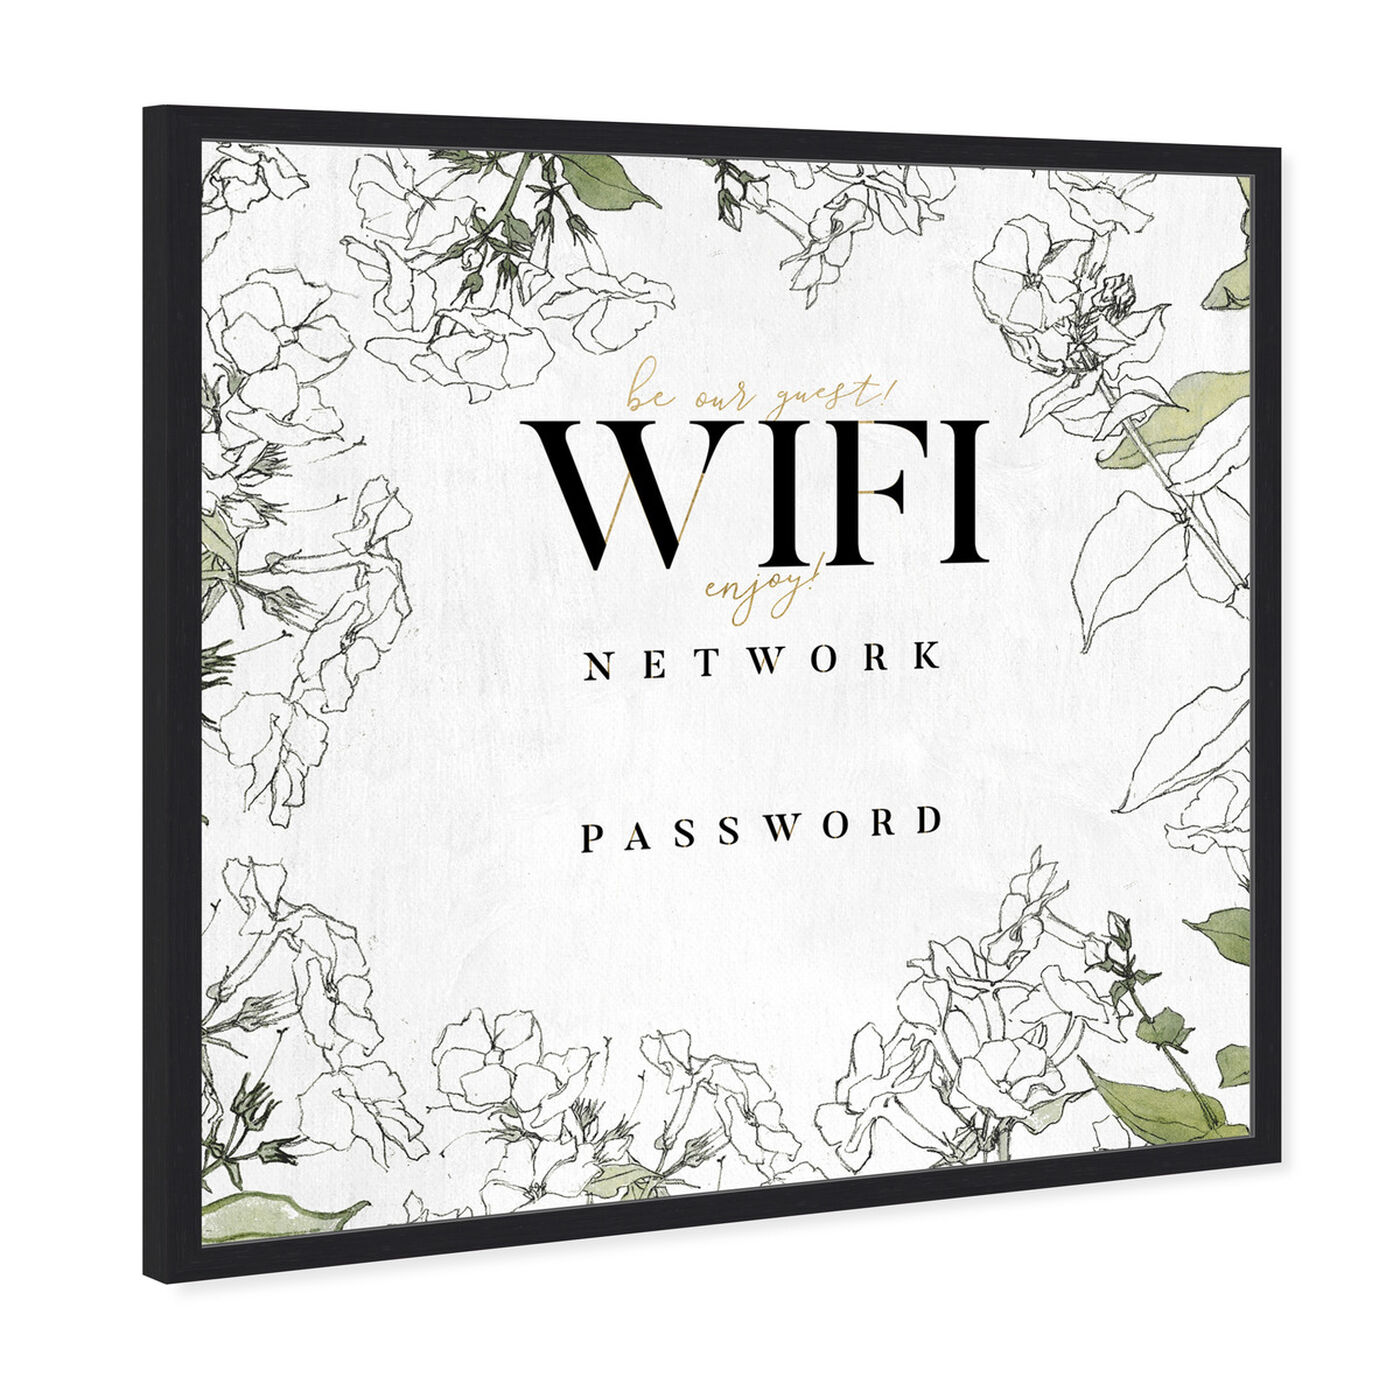 Angled view of Wifi Password Floral Sketches art.